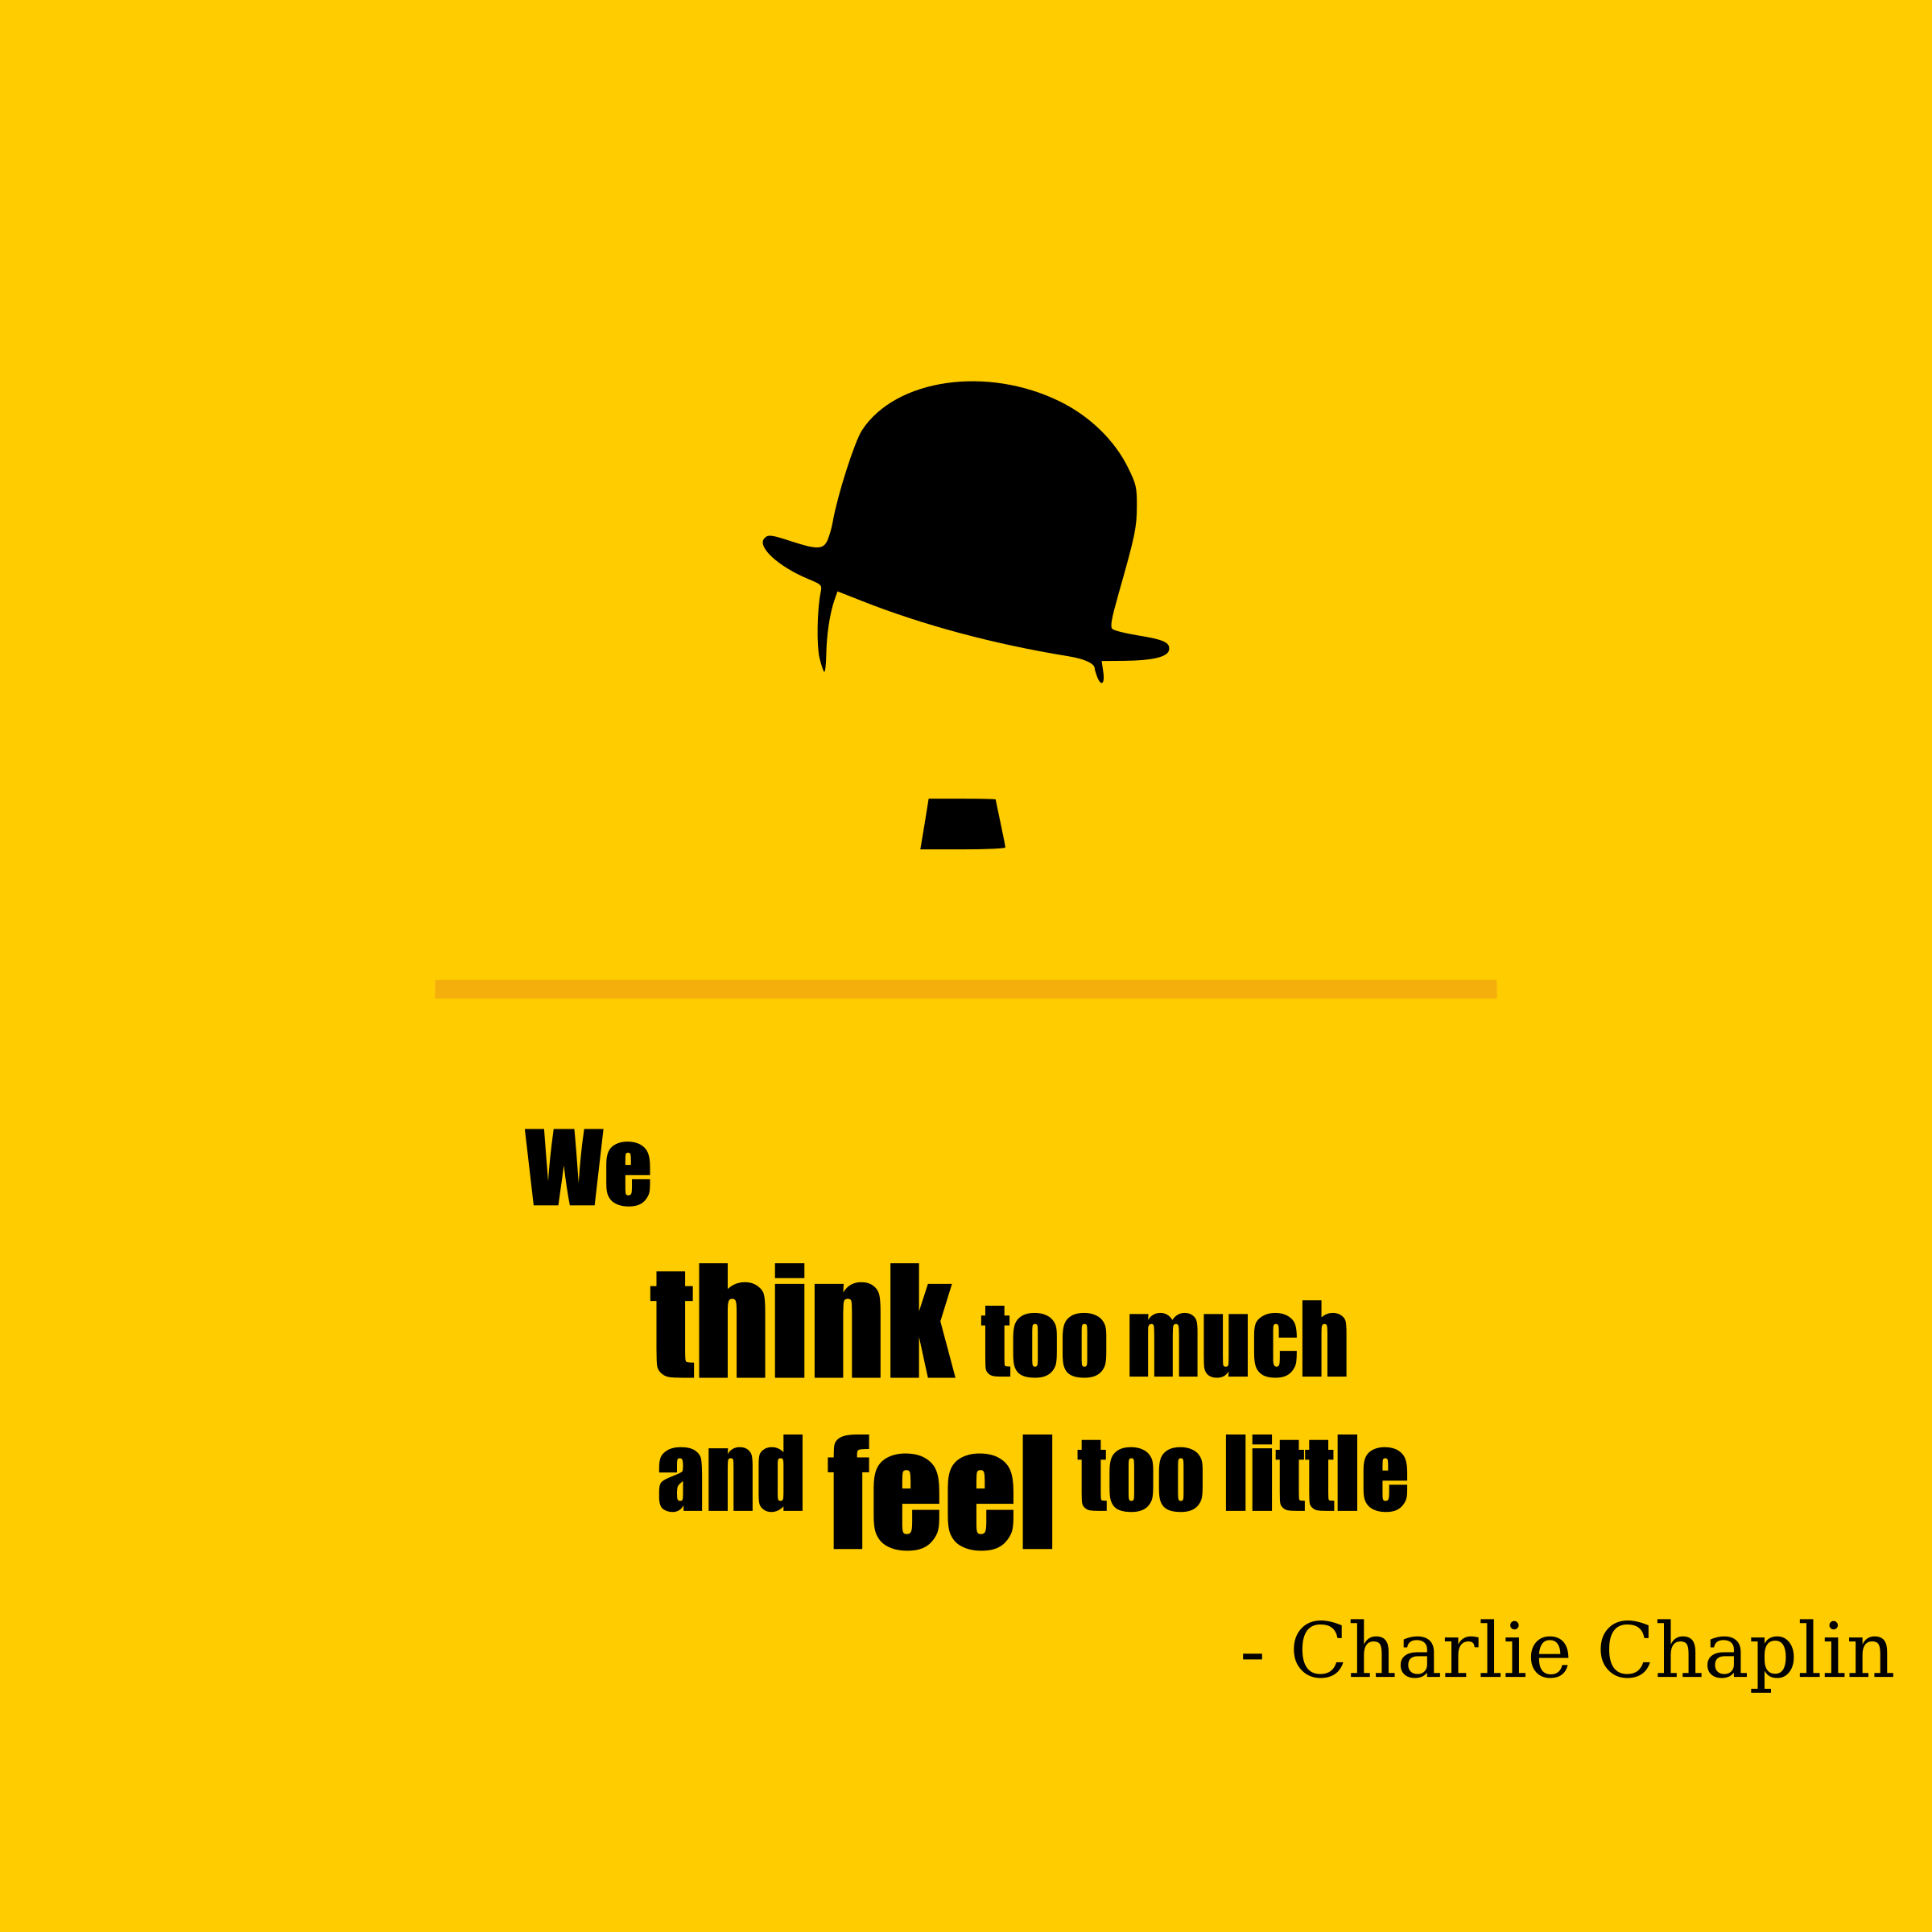 Charlie Chaplin quote by suthir